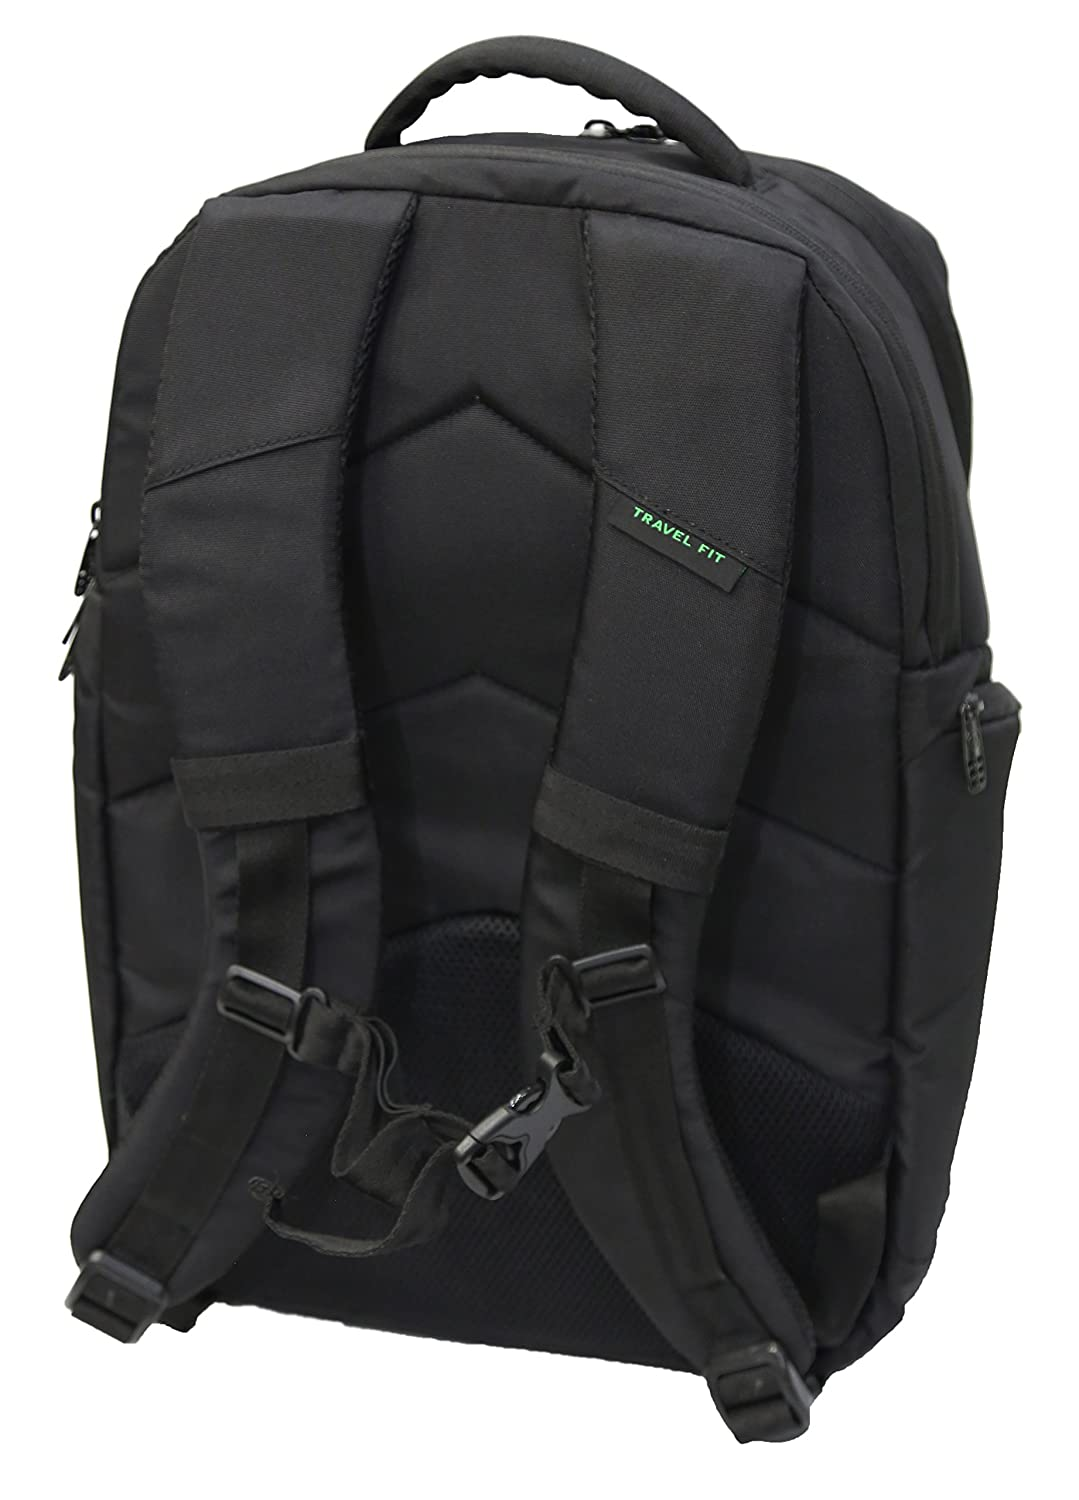 6 Pack Fitness Expedition Backpack Meal Mangement System 300 Black//Red